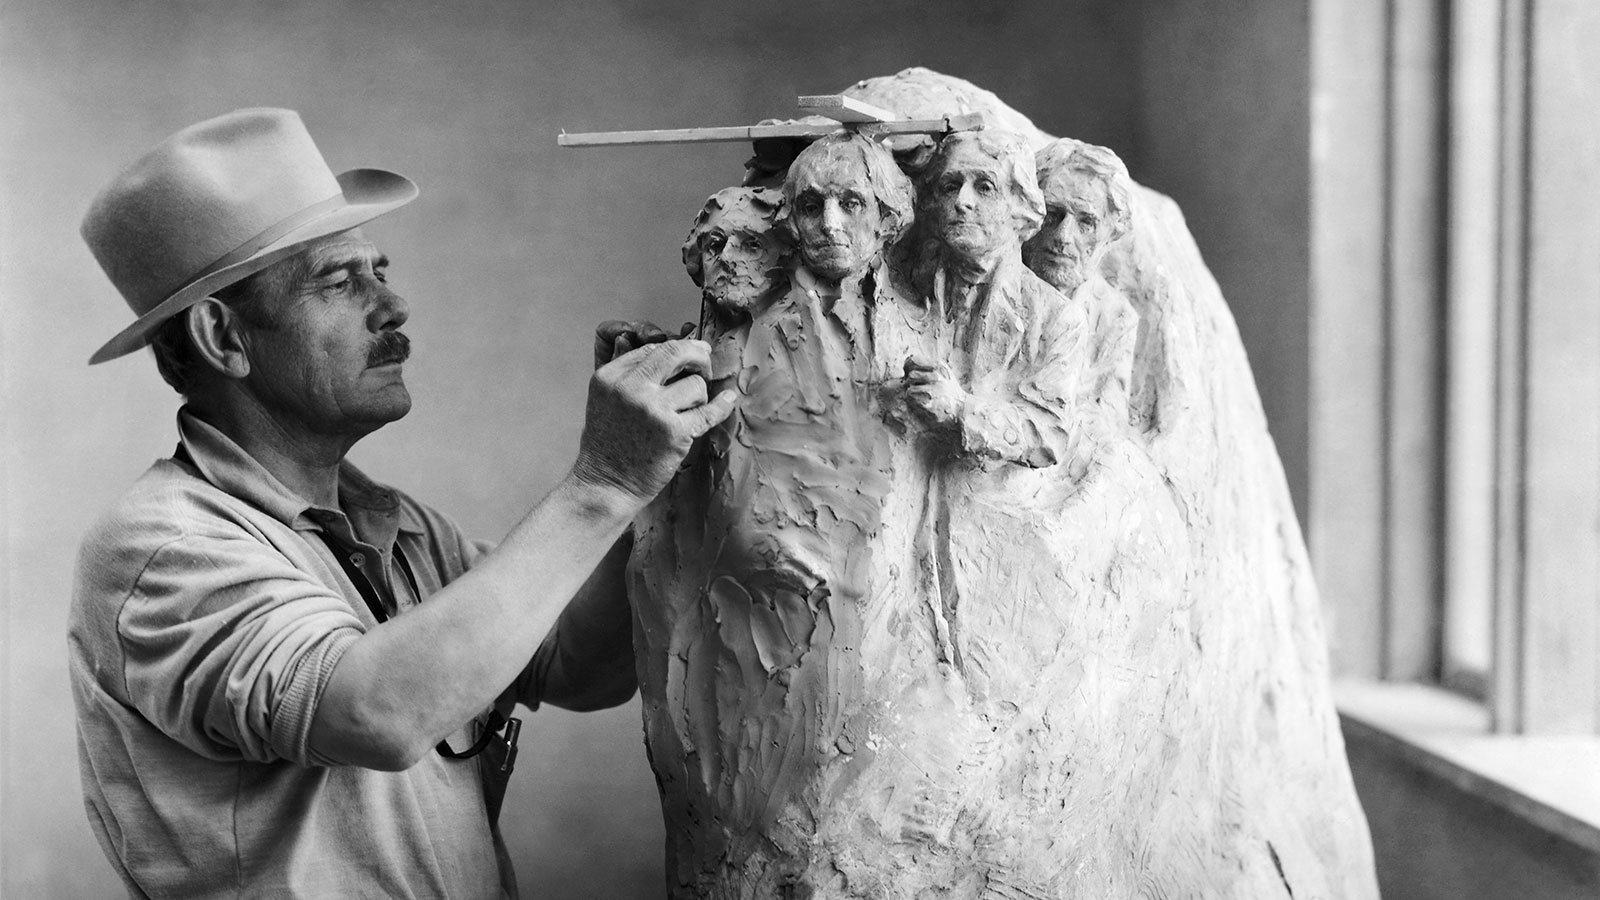 John Gutzom de la Mothe Borglum, seen in his studio at Rushmore in the Black Hills of South Dakota